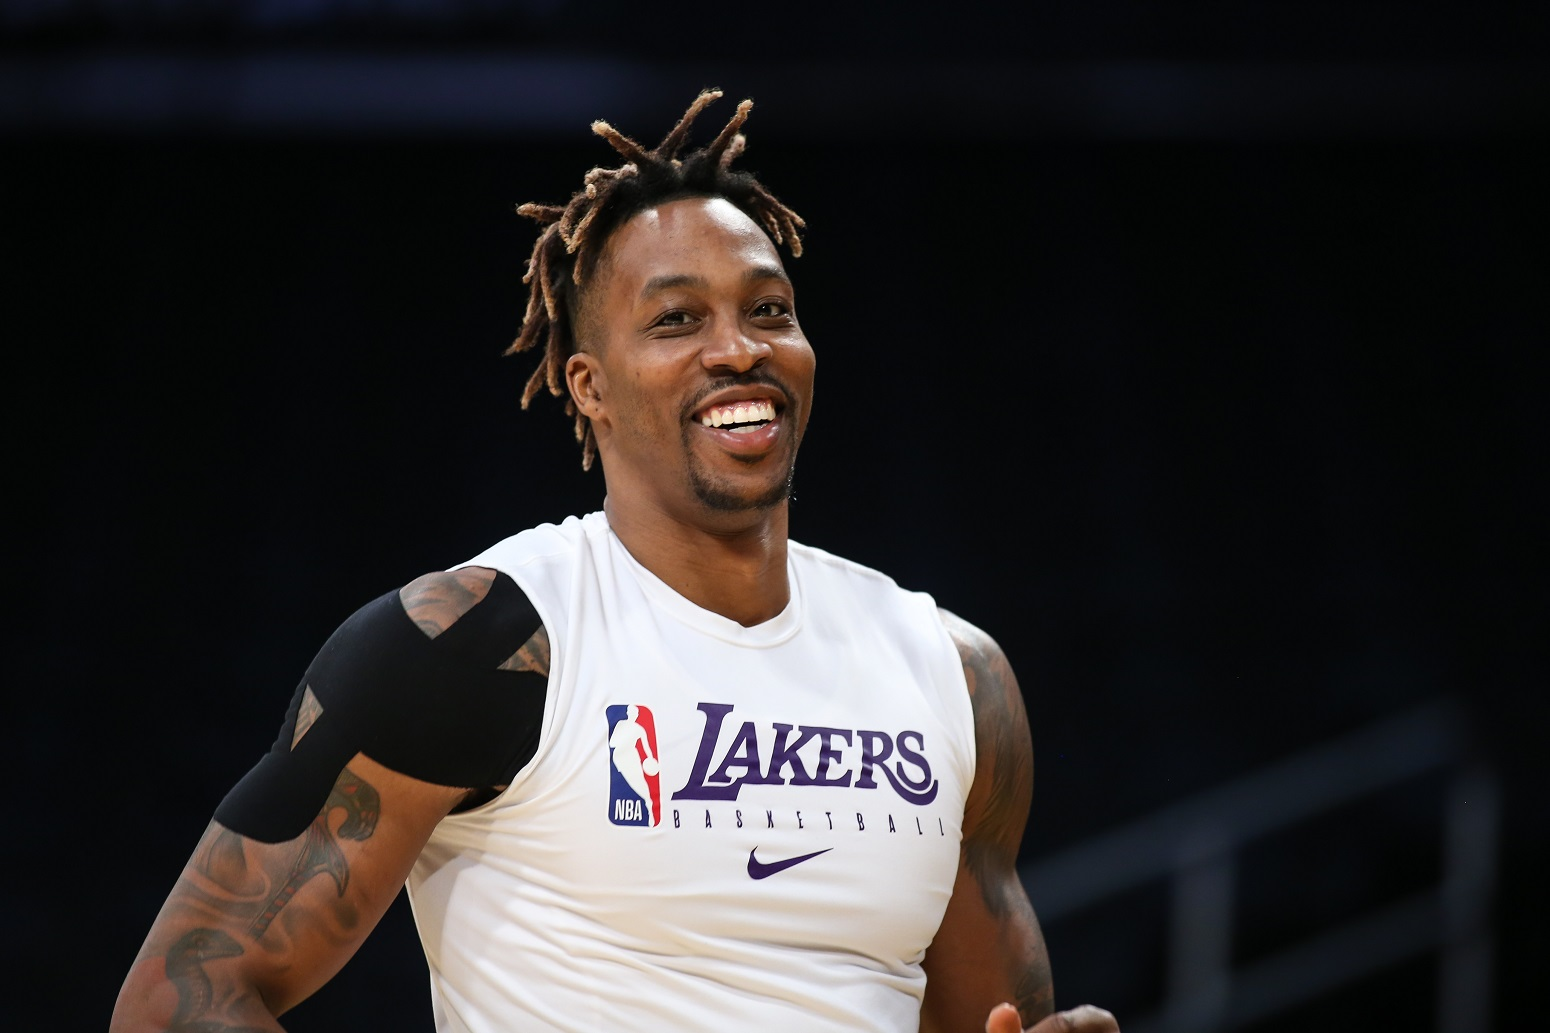 Dwight Howard Sent a Heartfelt Final Message to Lakers Fans